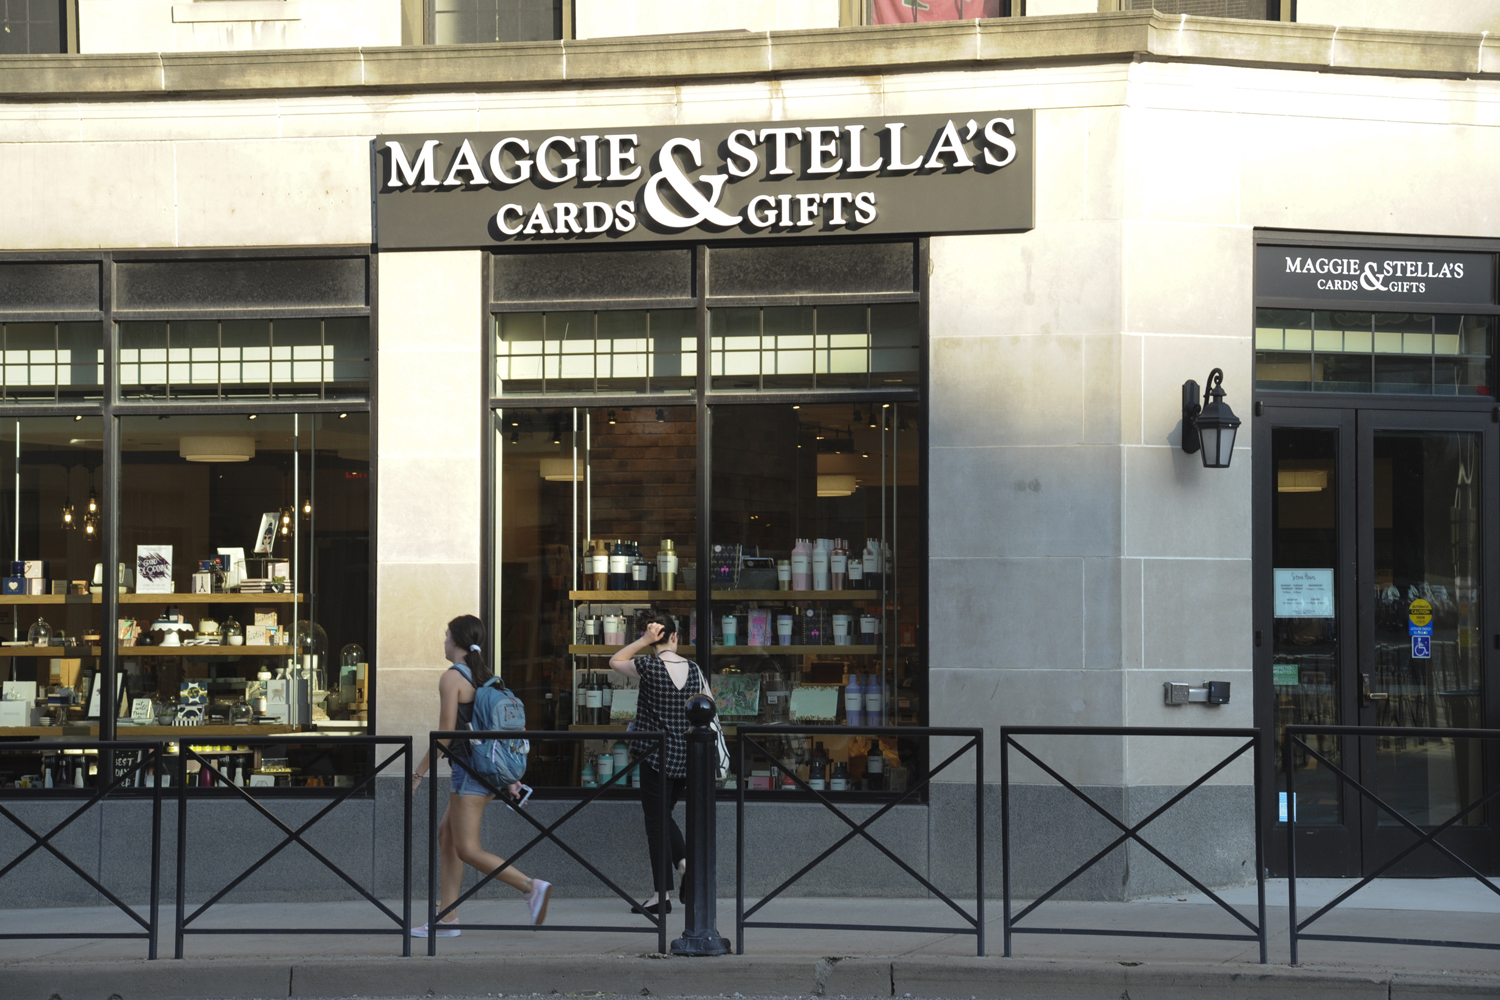 Maggie & Stella's cards and gifts relocated to Oakland Bakery's former location on Fifth Avenue this summer.